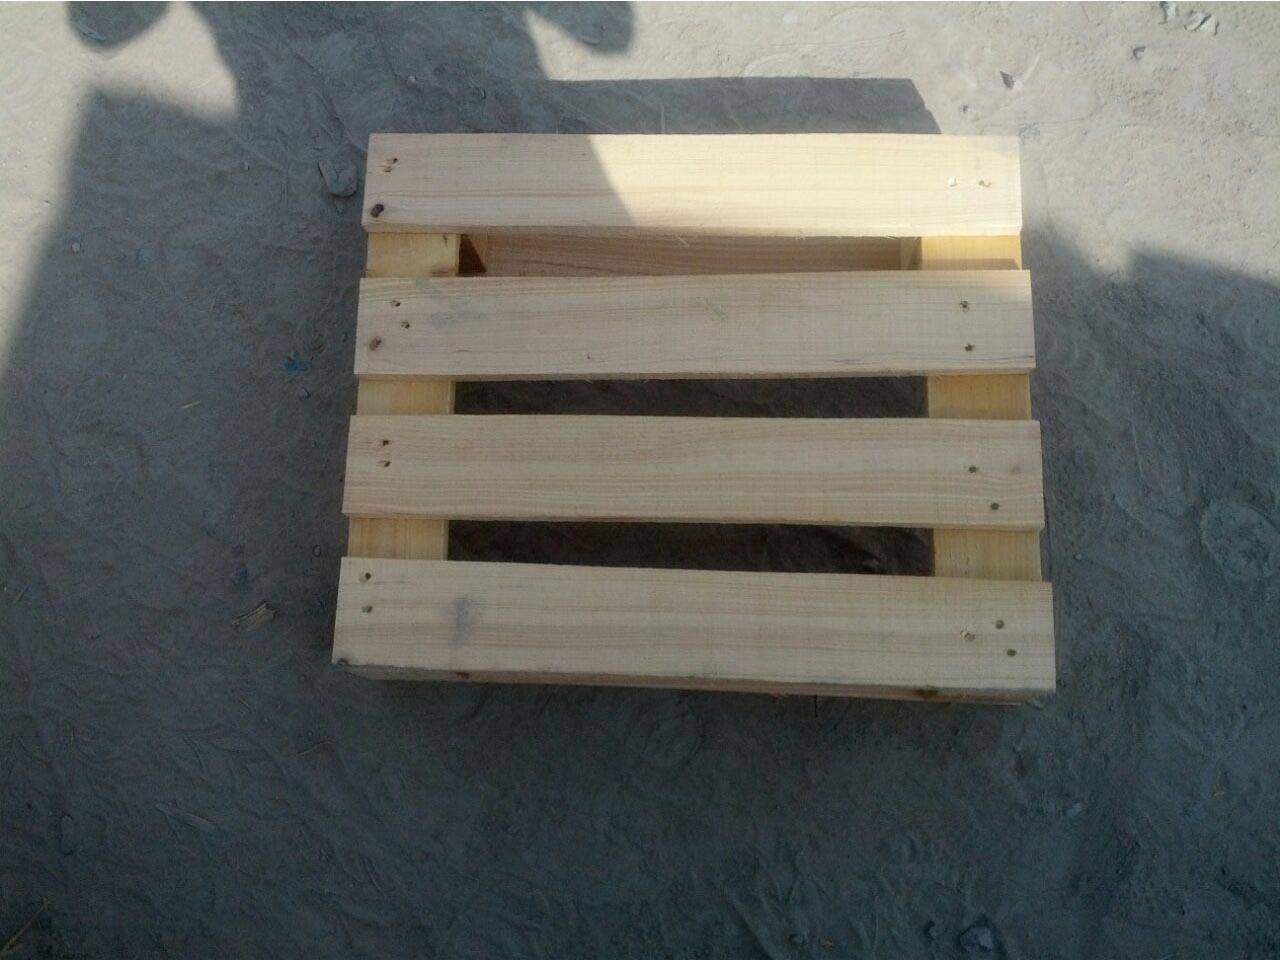 wooden pallet on the floor in shade